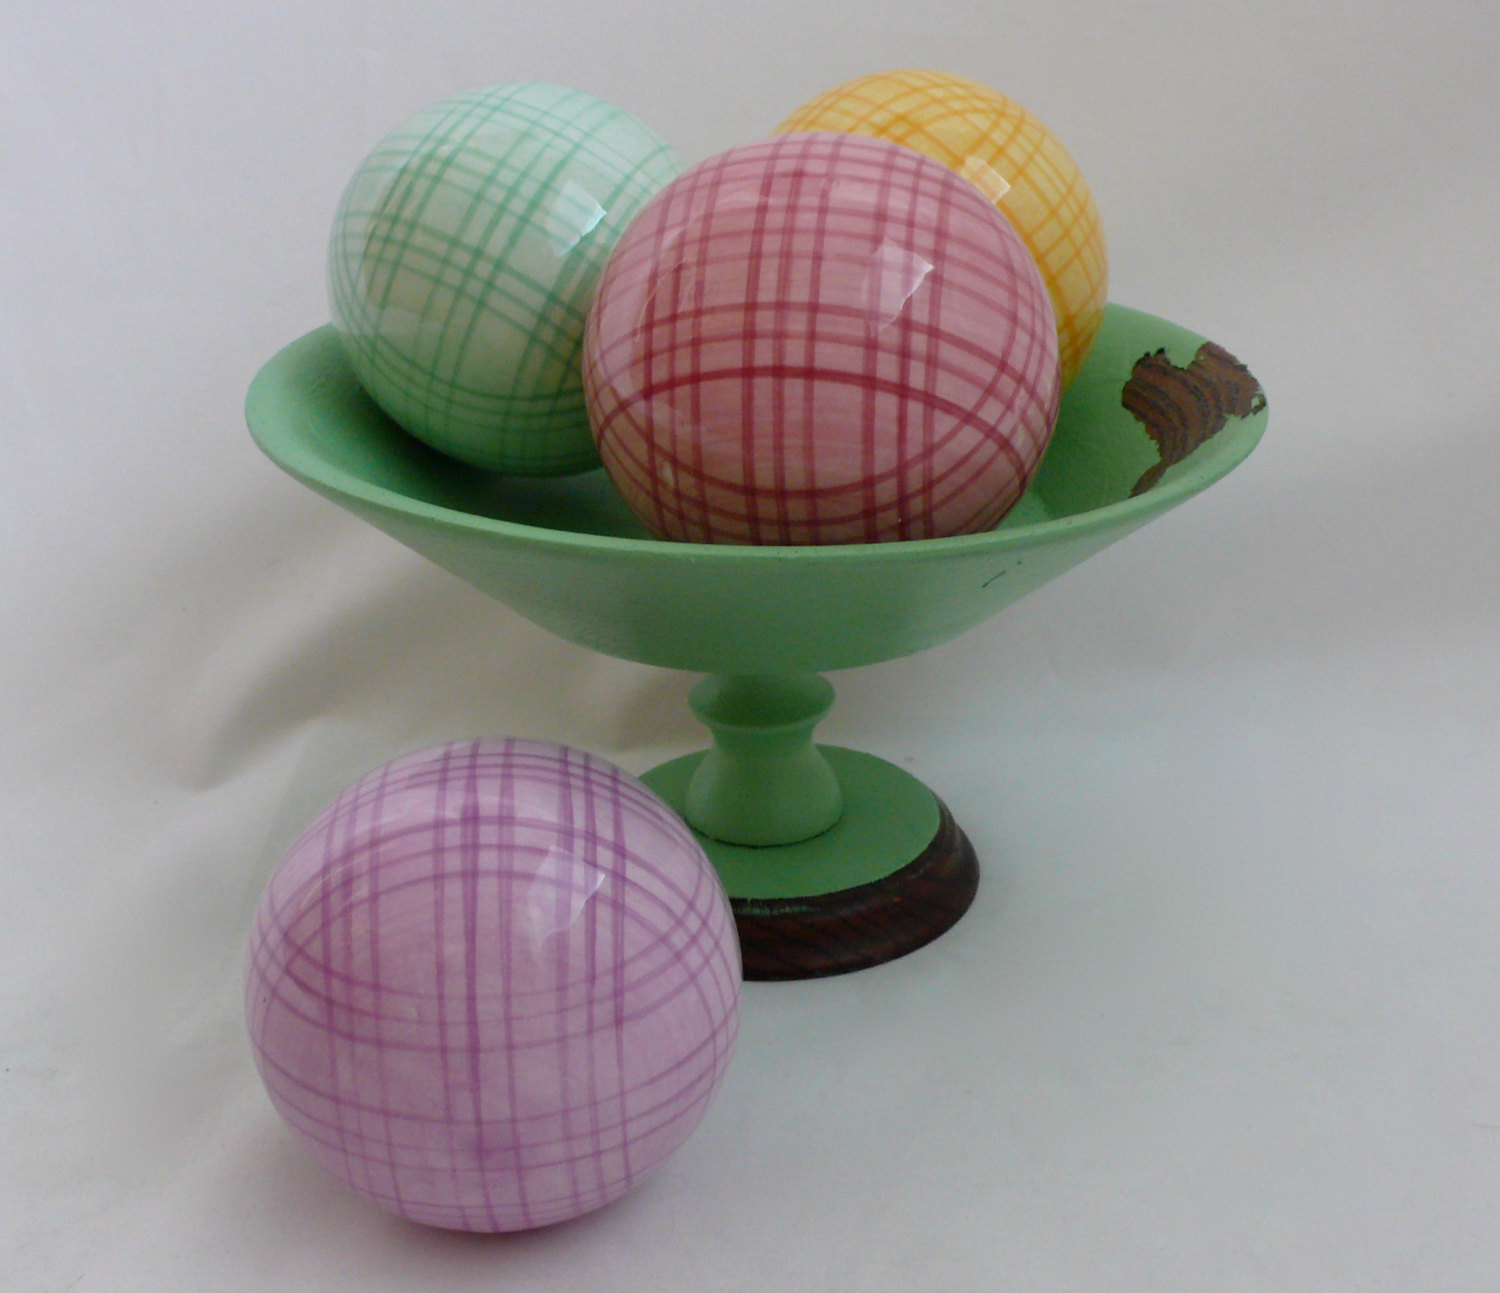 charming decorative orbs in multicolor and checked design on green bowl for table accessories ideas